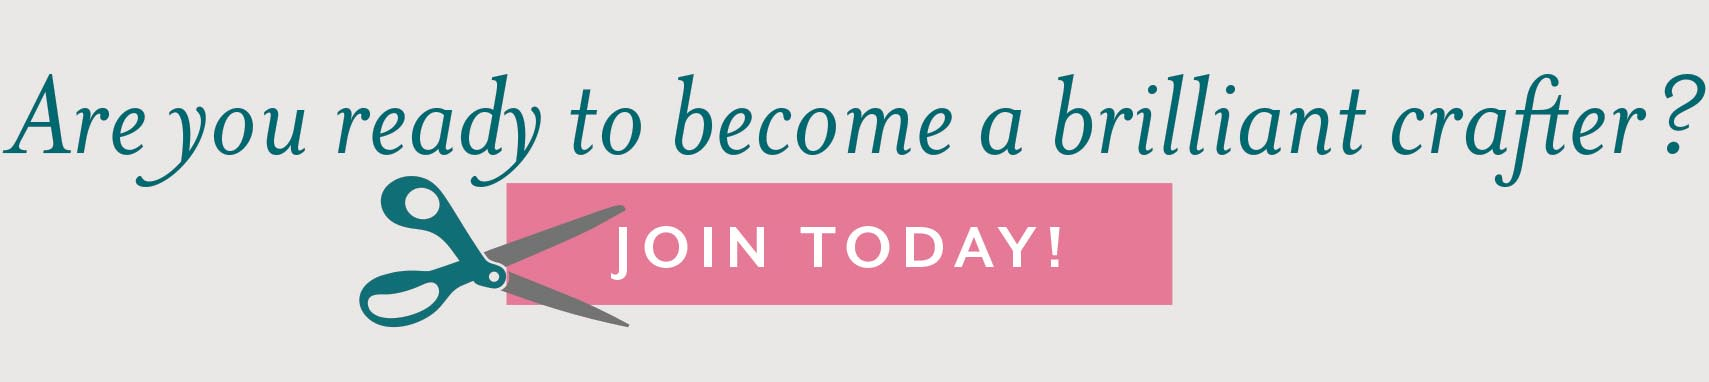 Are you ready to become a brilliant crafter? Join today!